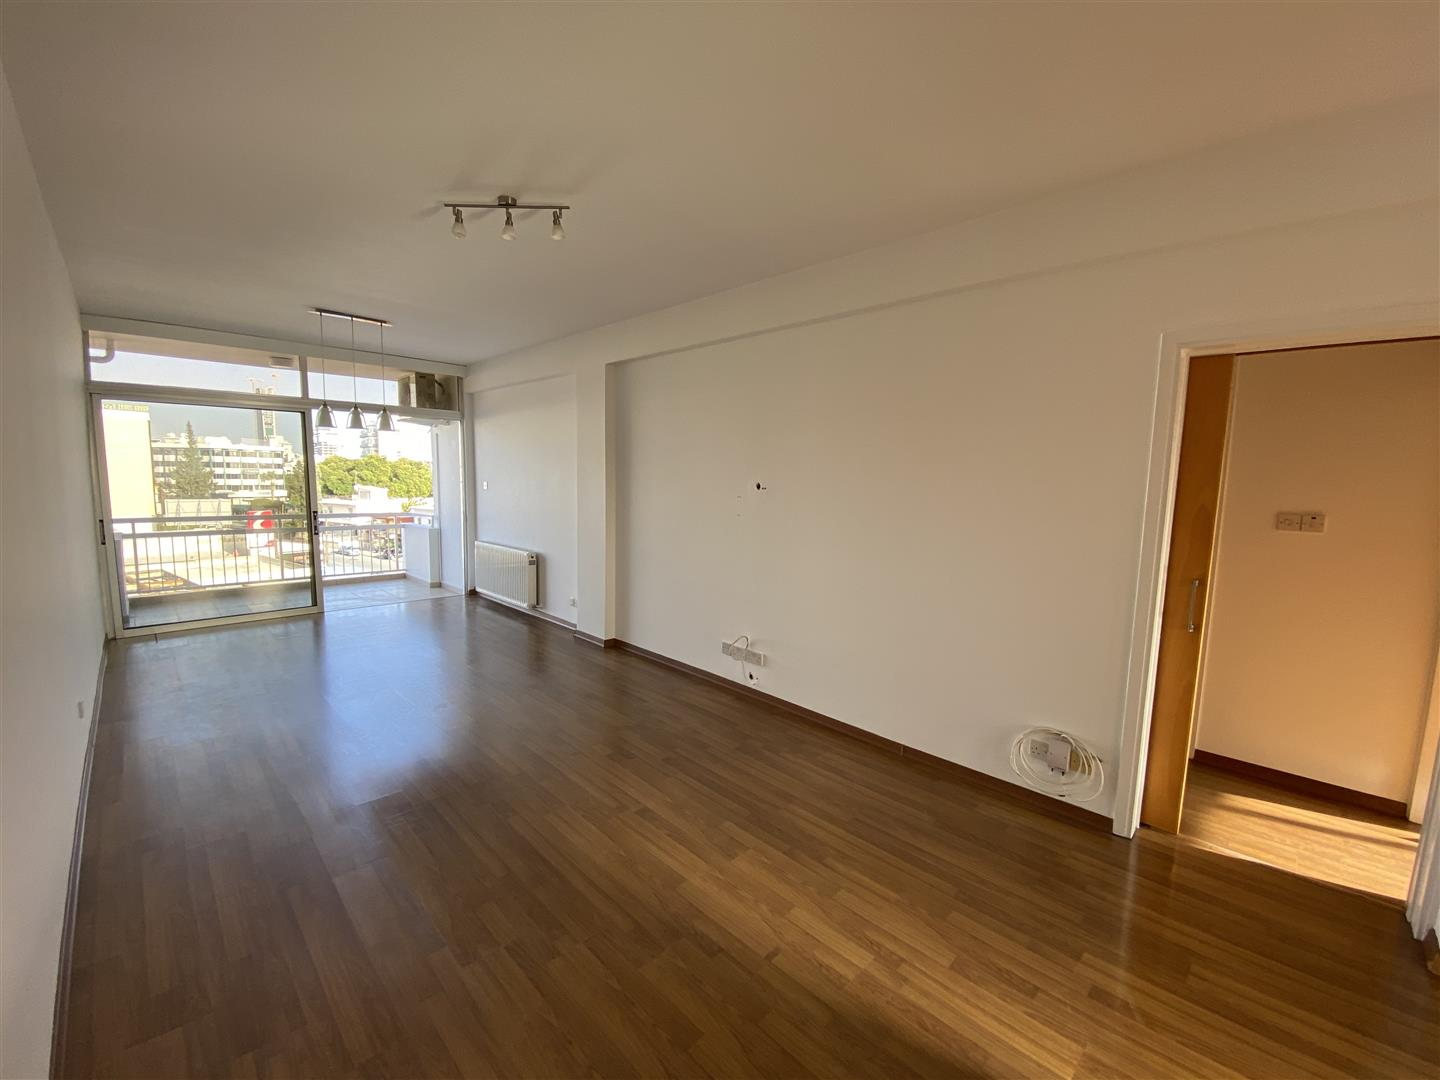 Picture of 3 Bed with sea view - Gladstonos Street